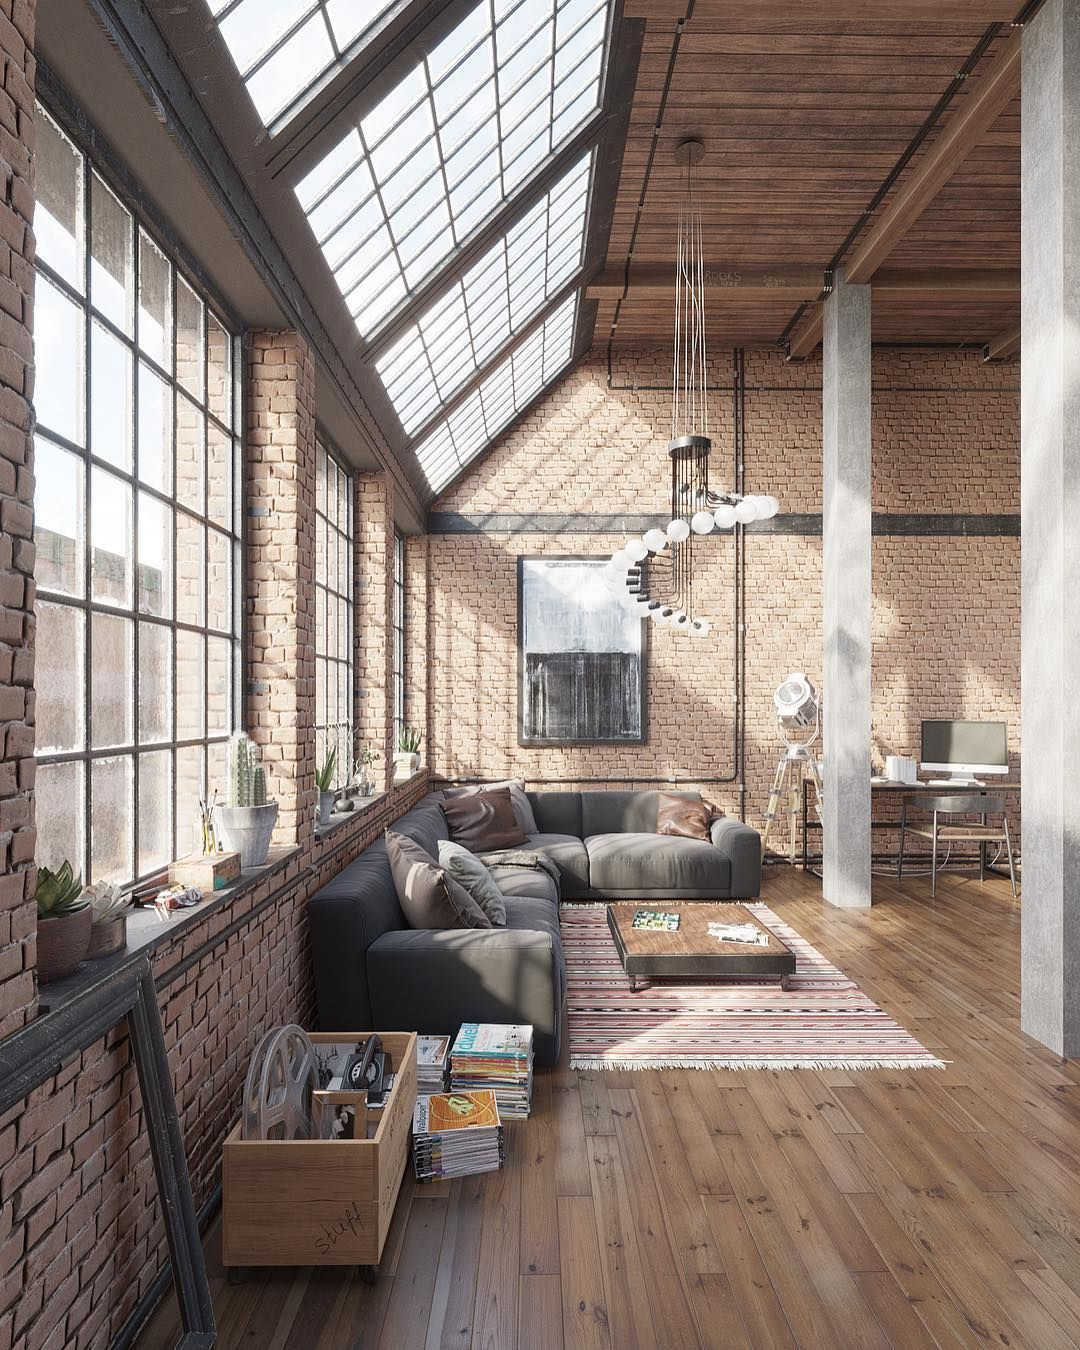 The Vintage Industrial Inspirations You Needed To Do A Home